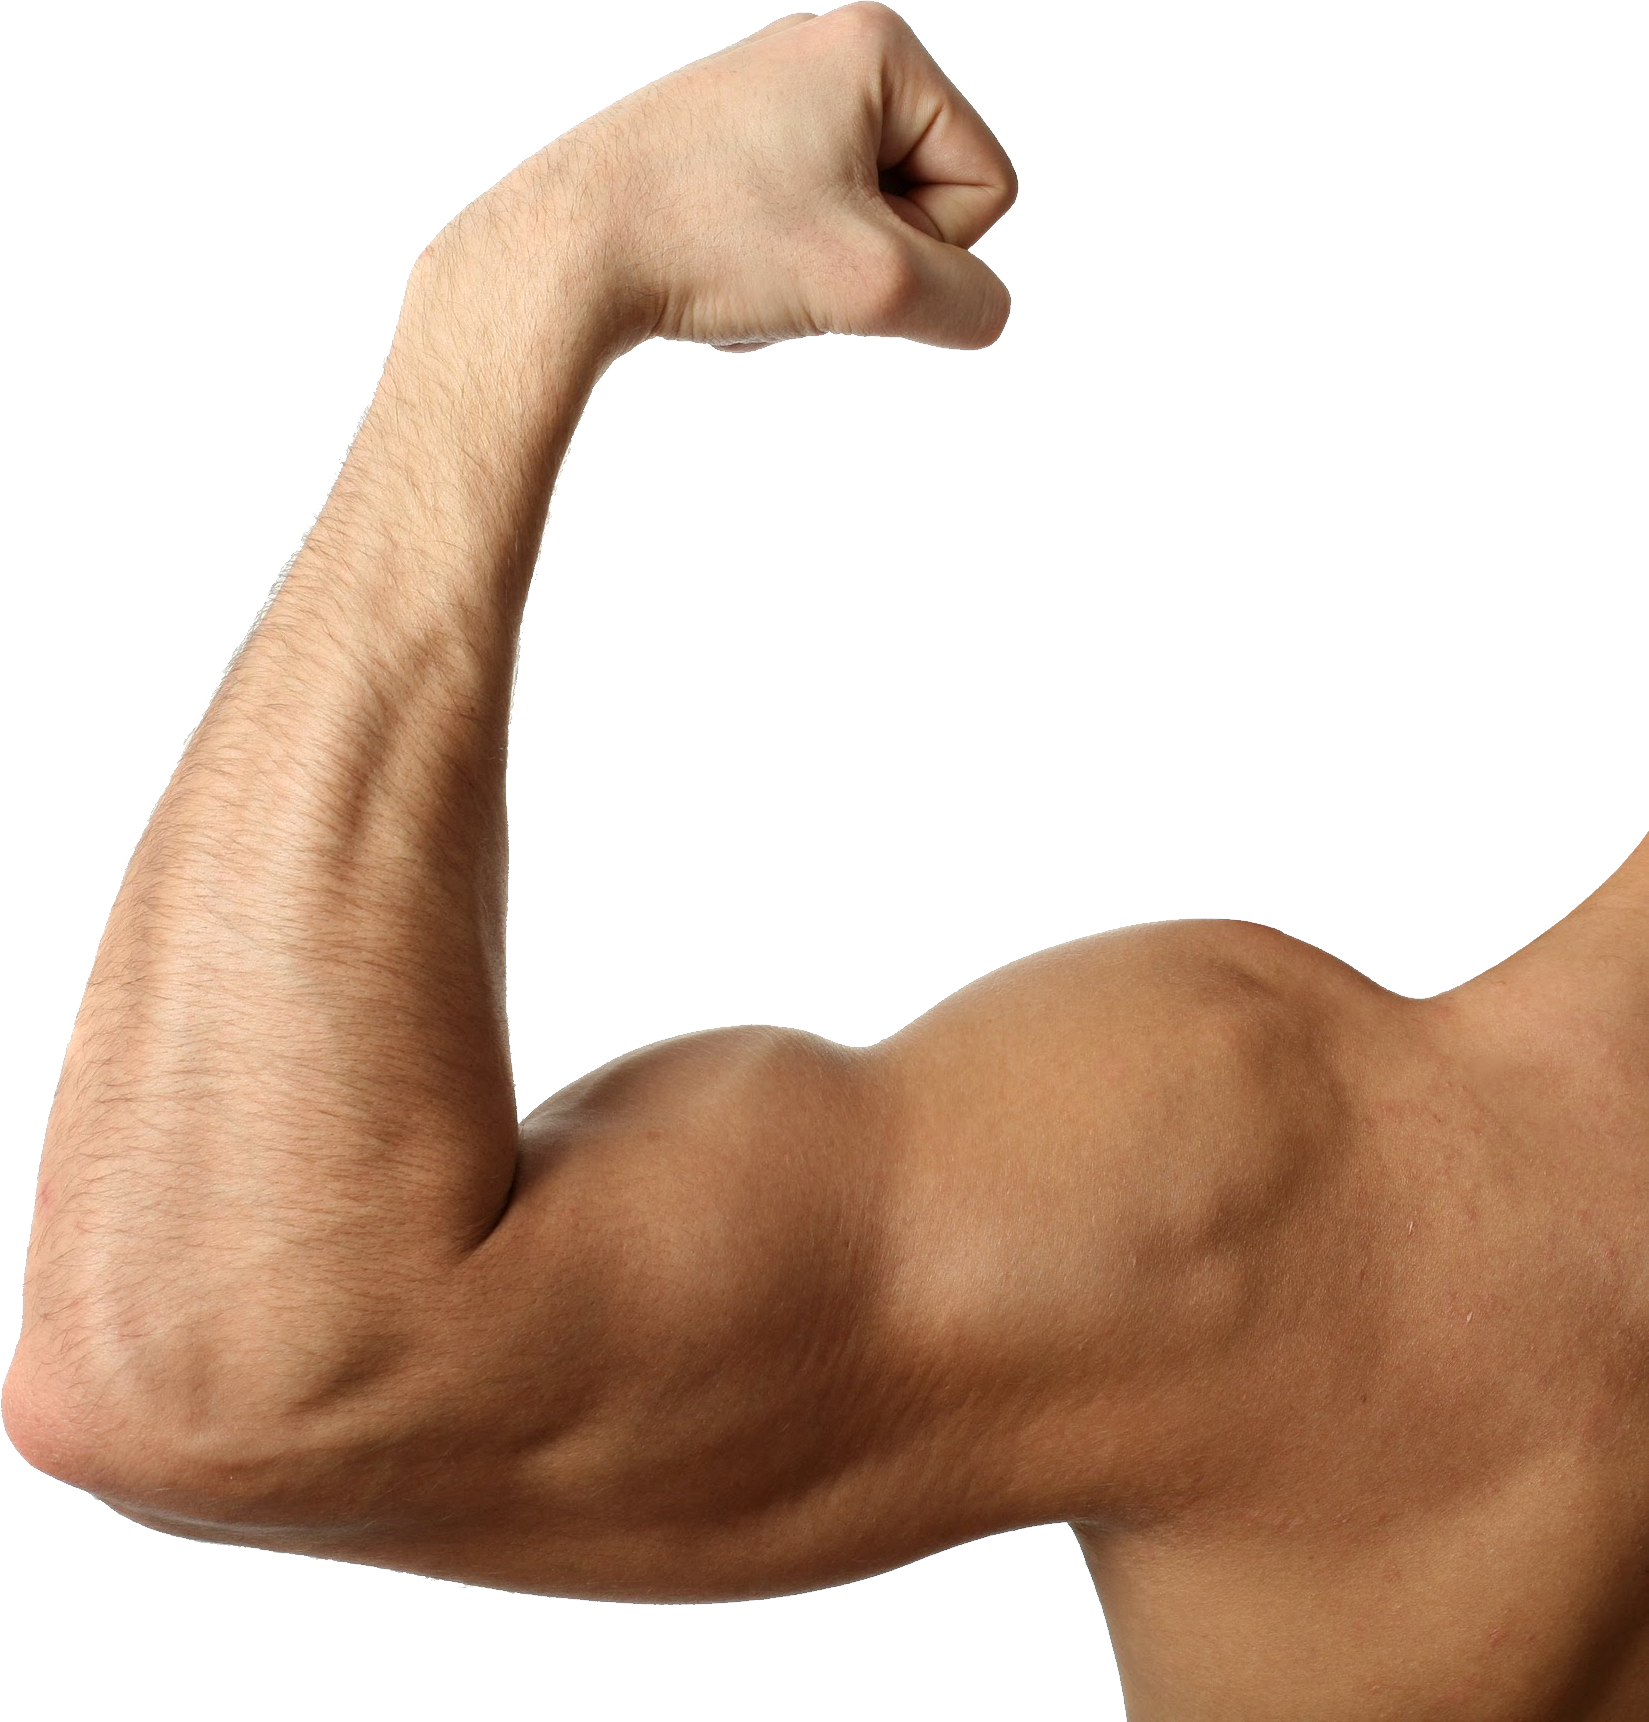 Transparent muscles hand. Muscle png images free